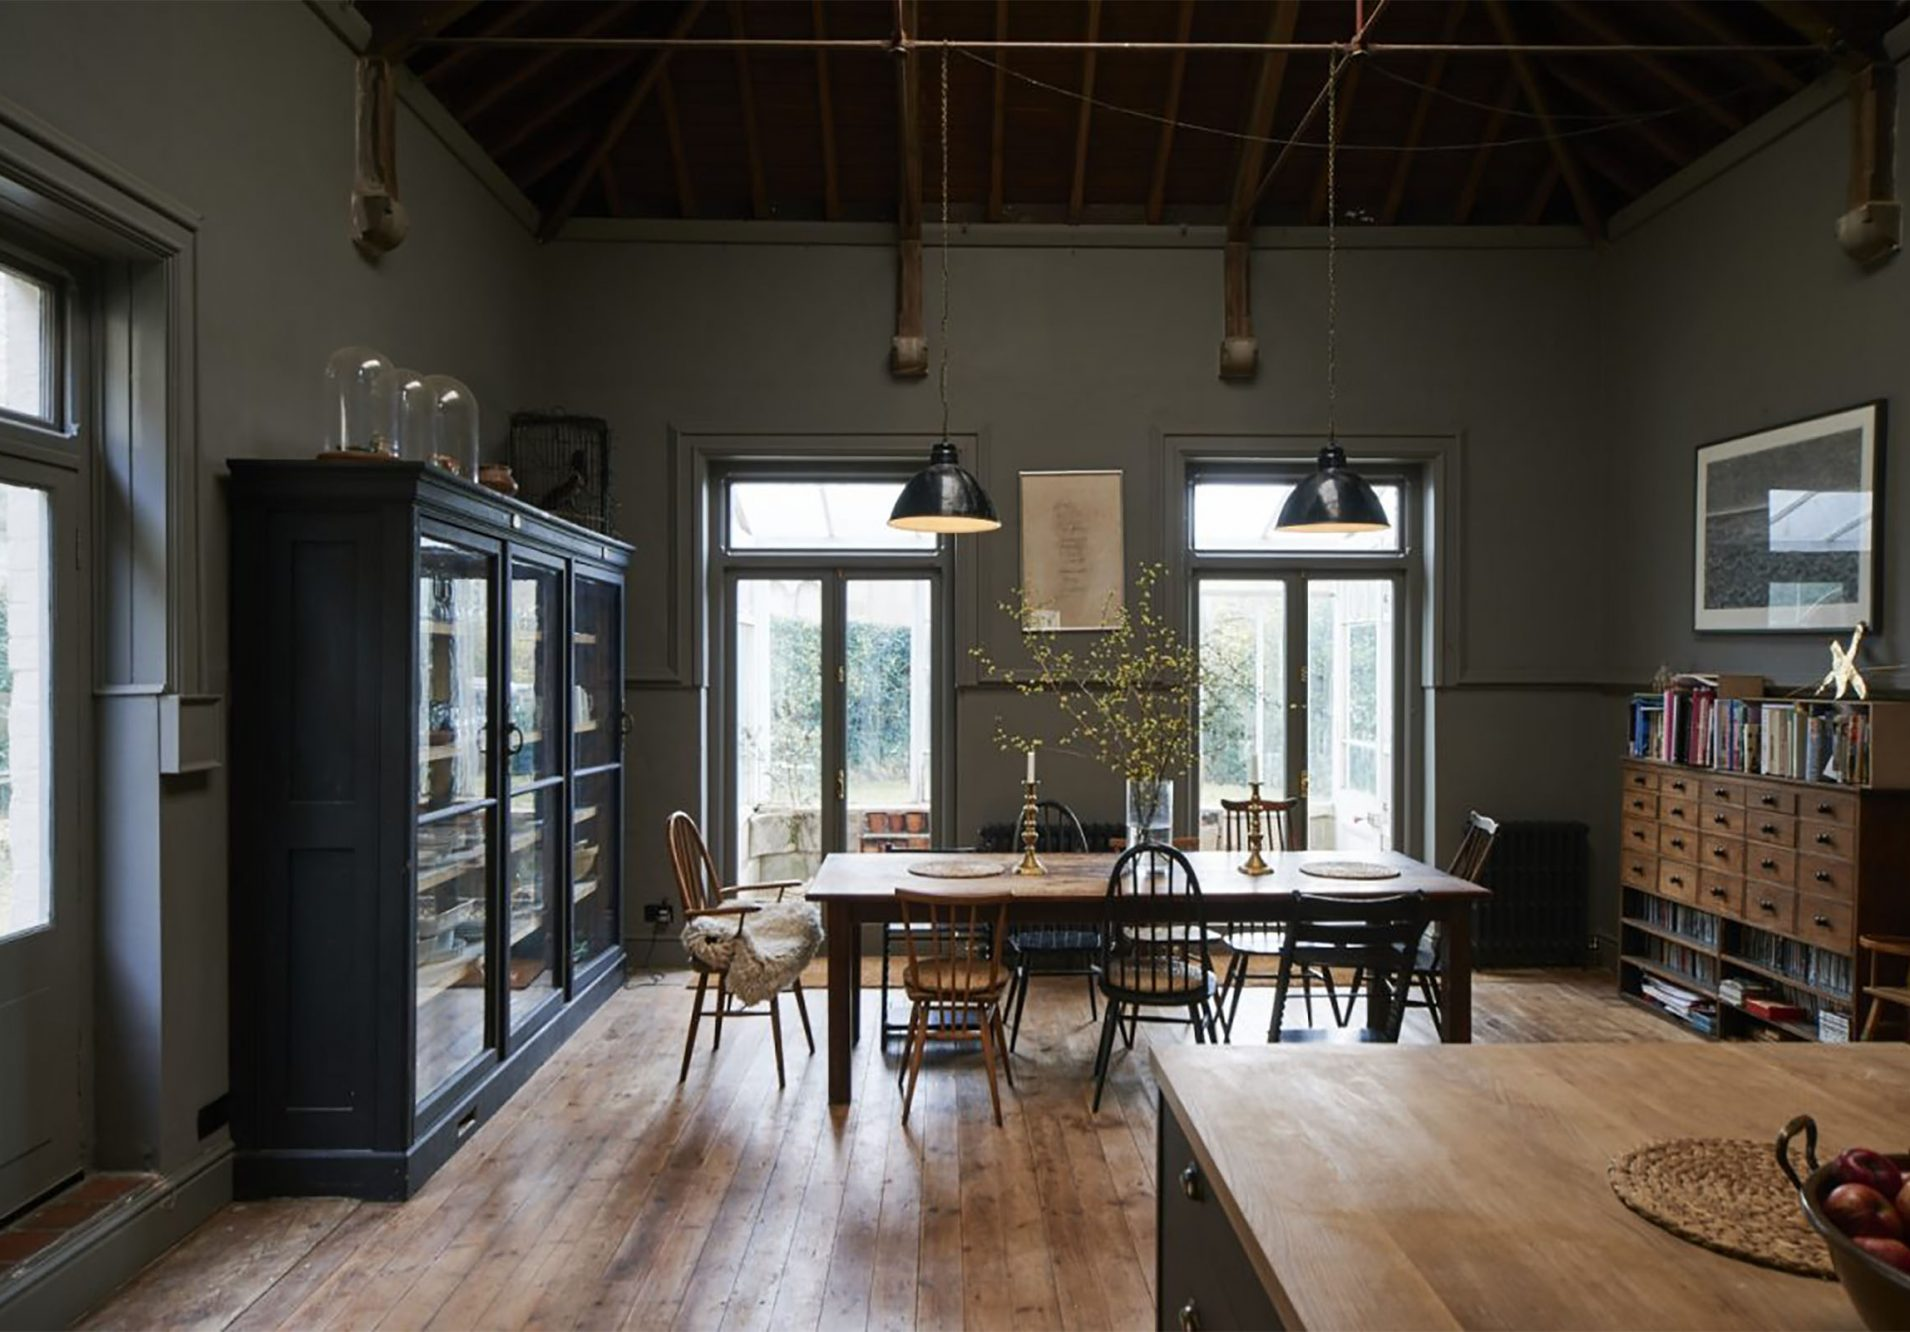 The kind of kitchens that I love